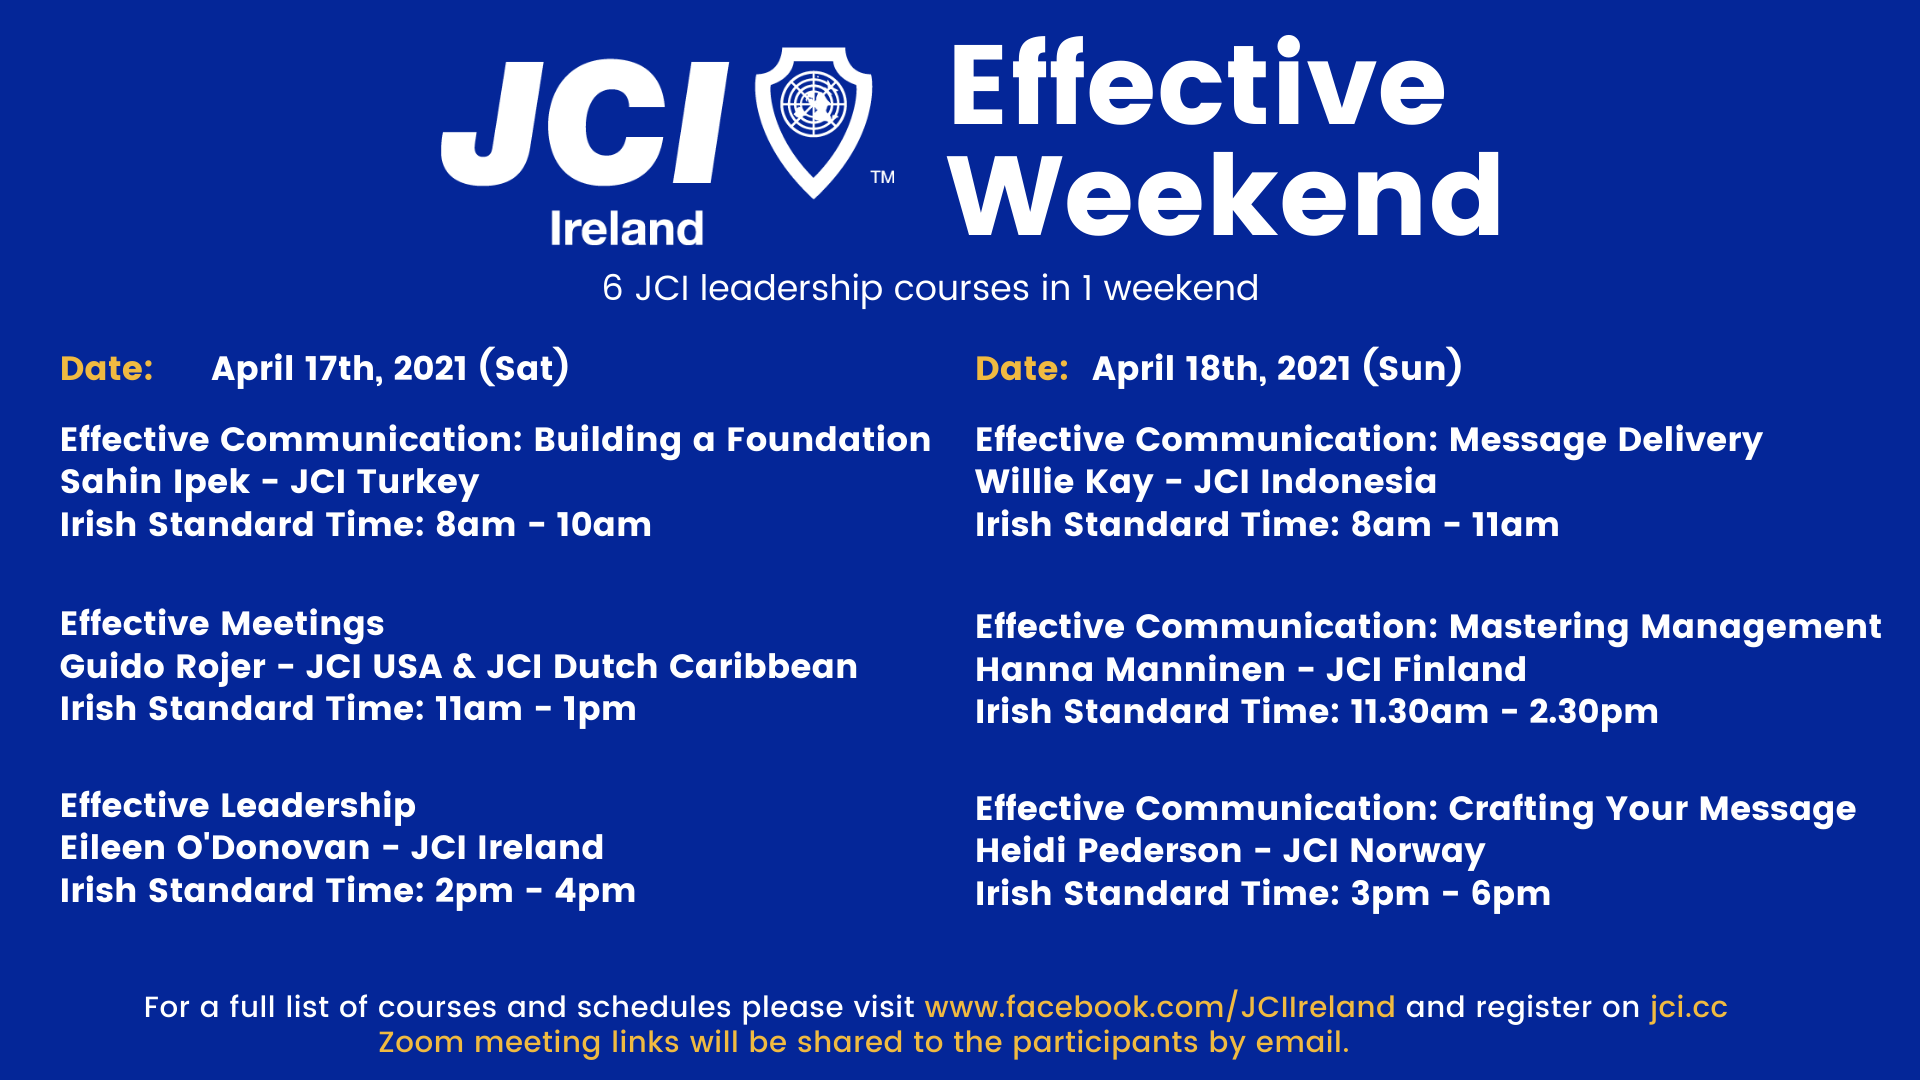 Effective Weekend 2021 - Effective Leadership